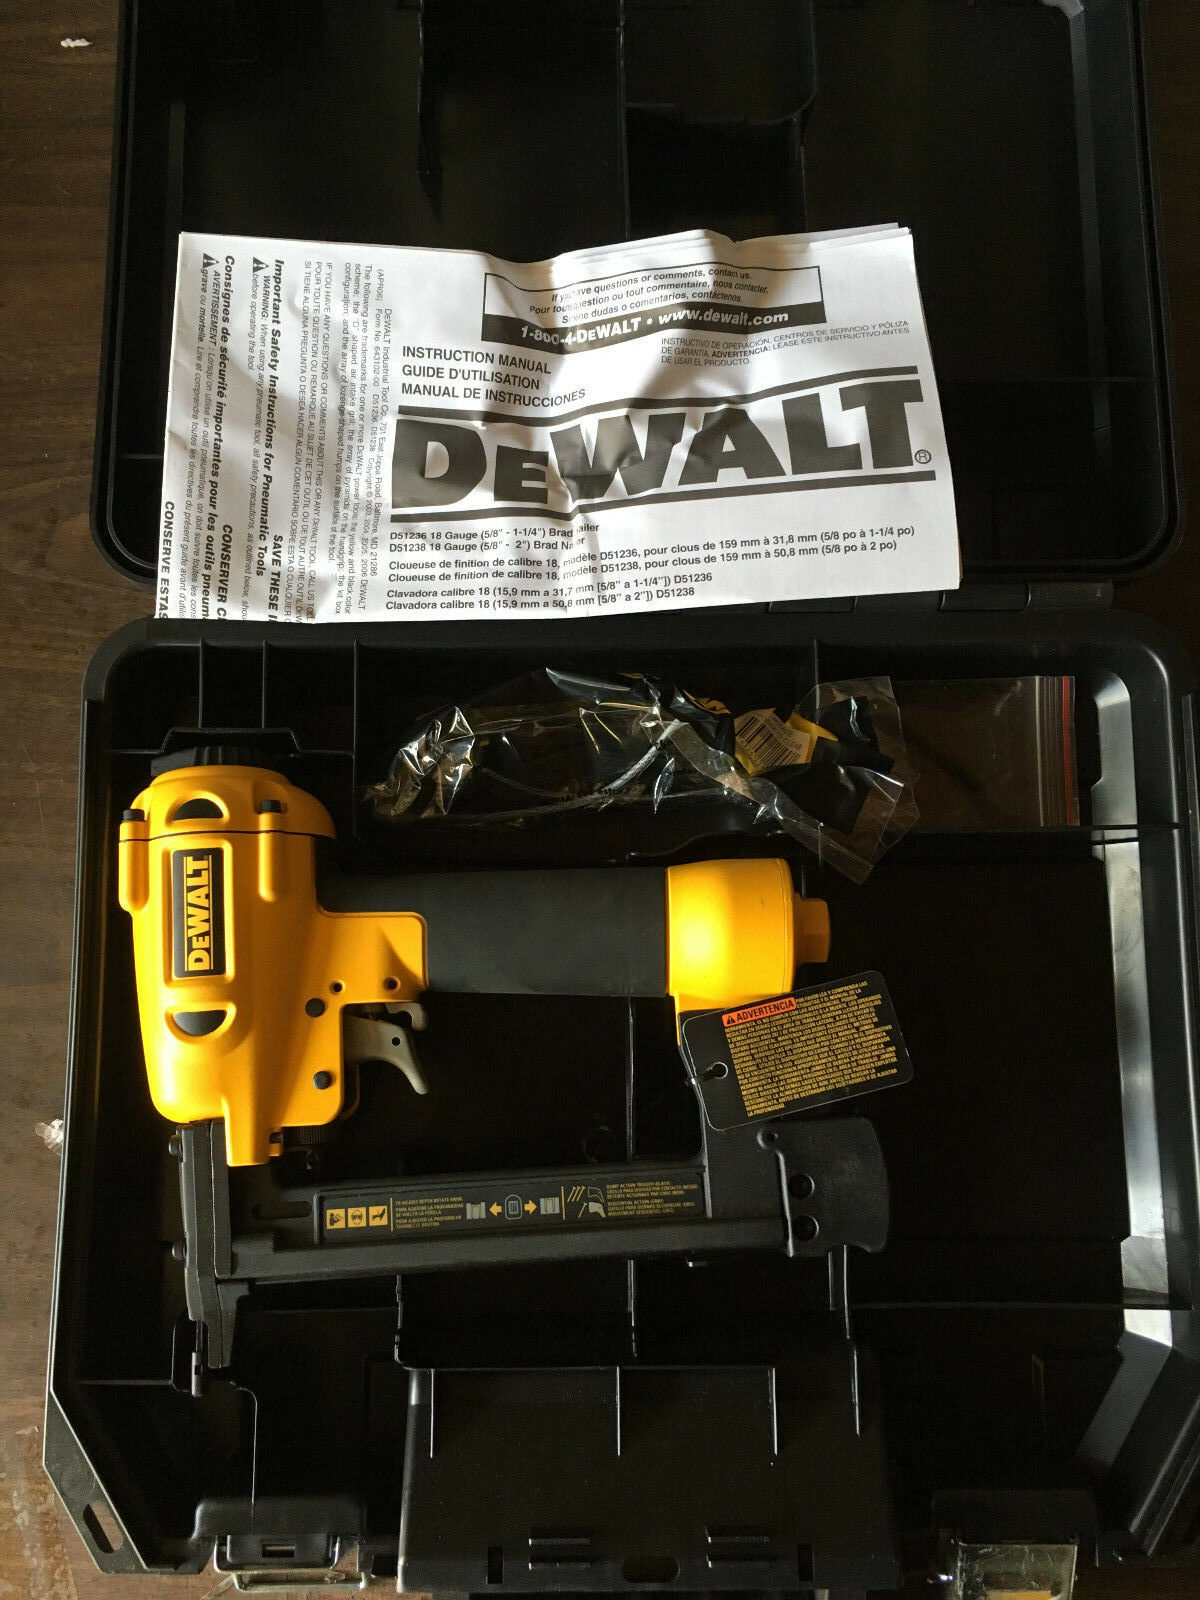 Dewalt D51420 1  18 GA. Narrow Crown Stapler Accepts Only 1 4  Crown Staples